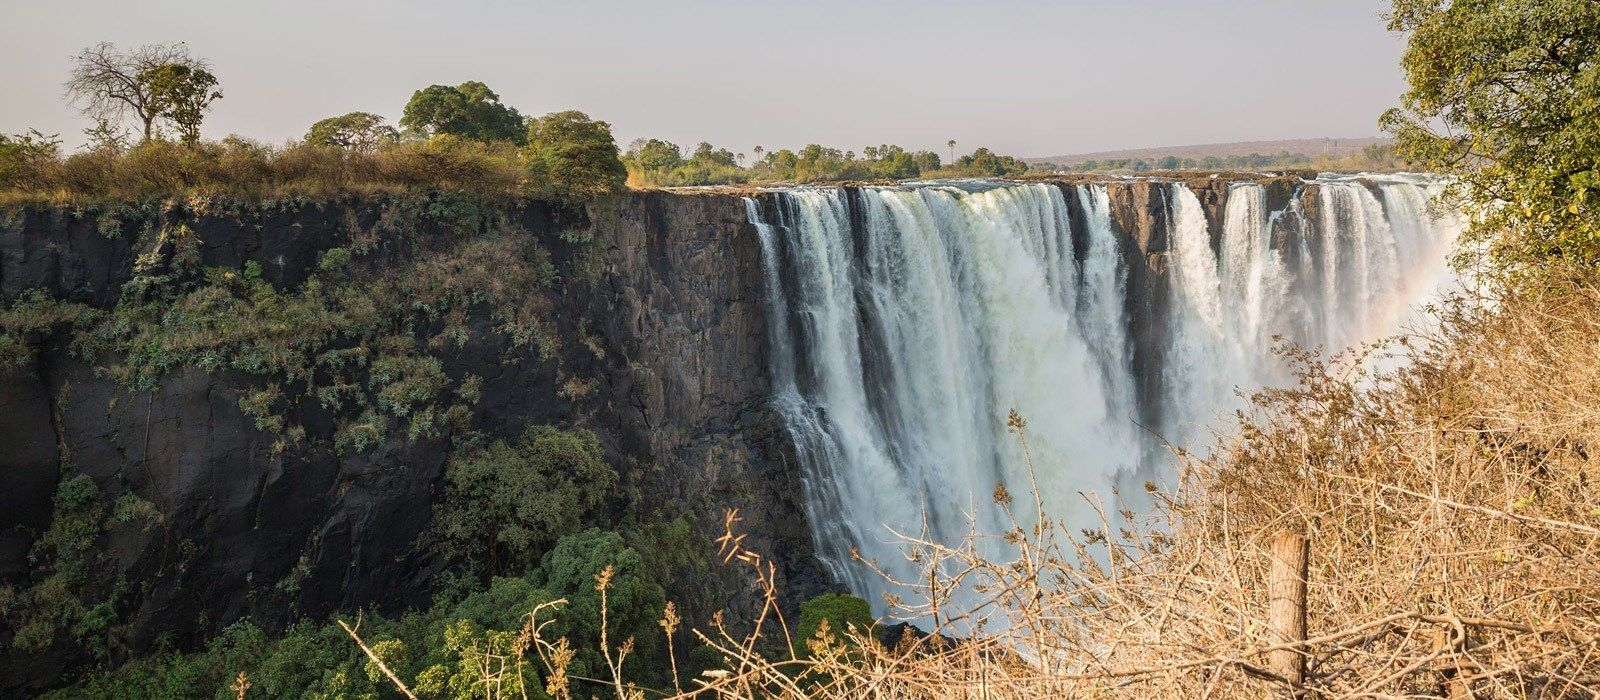 South Africa & Zambia:  Panoramaroute, Kruger & Victoria Falls Tour Trip 4